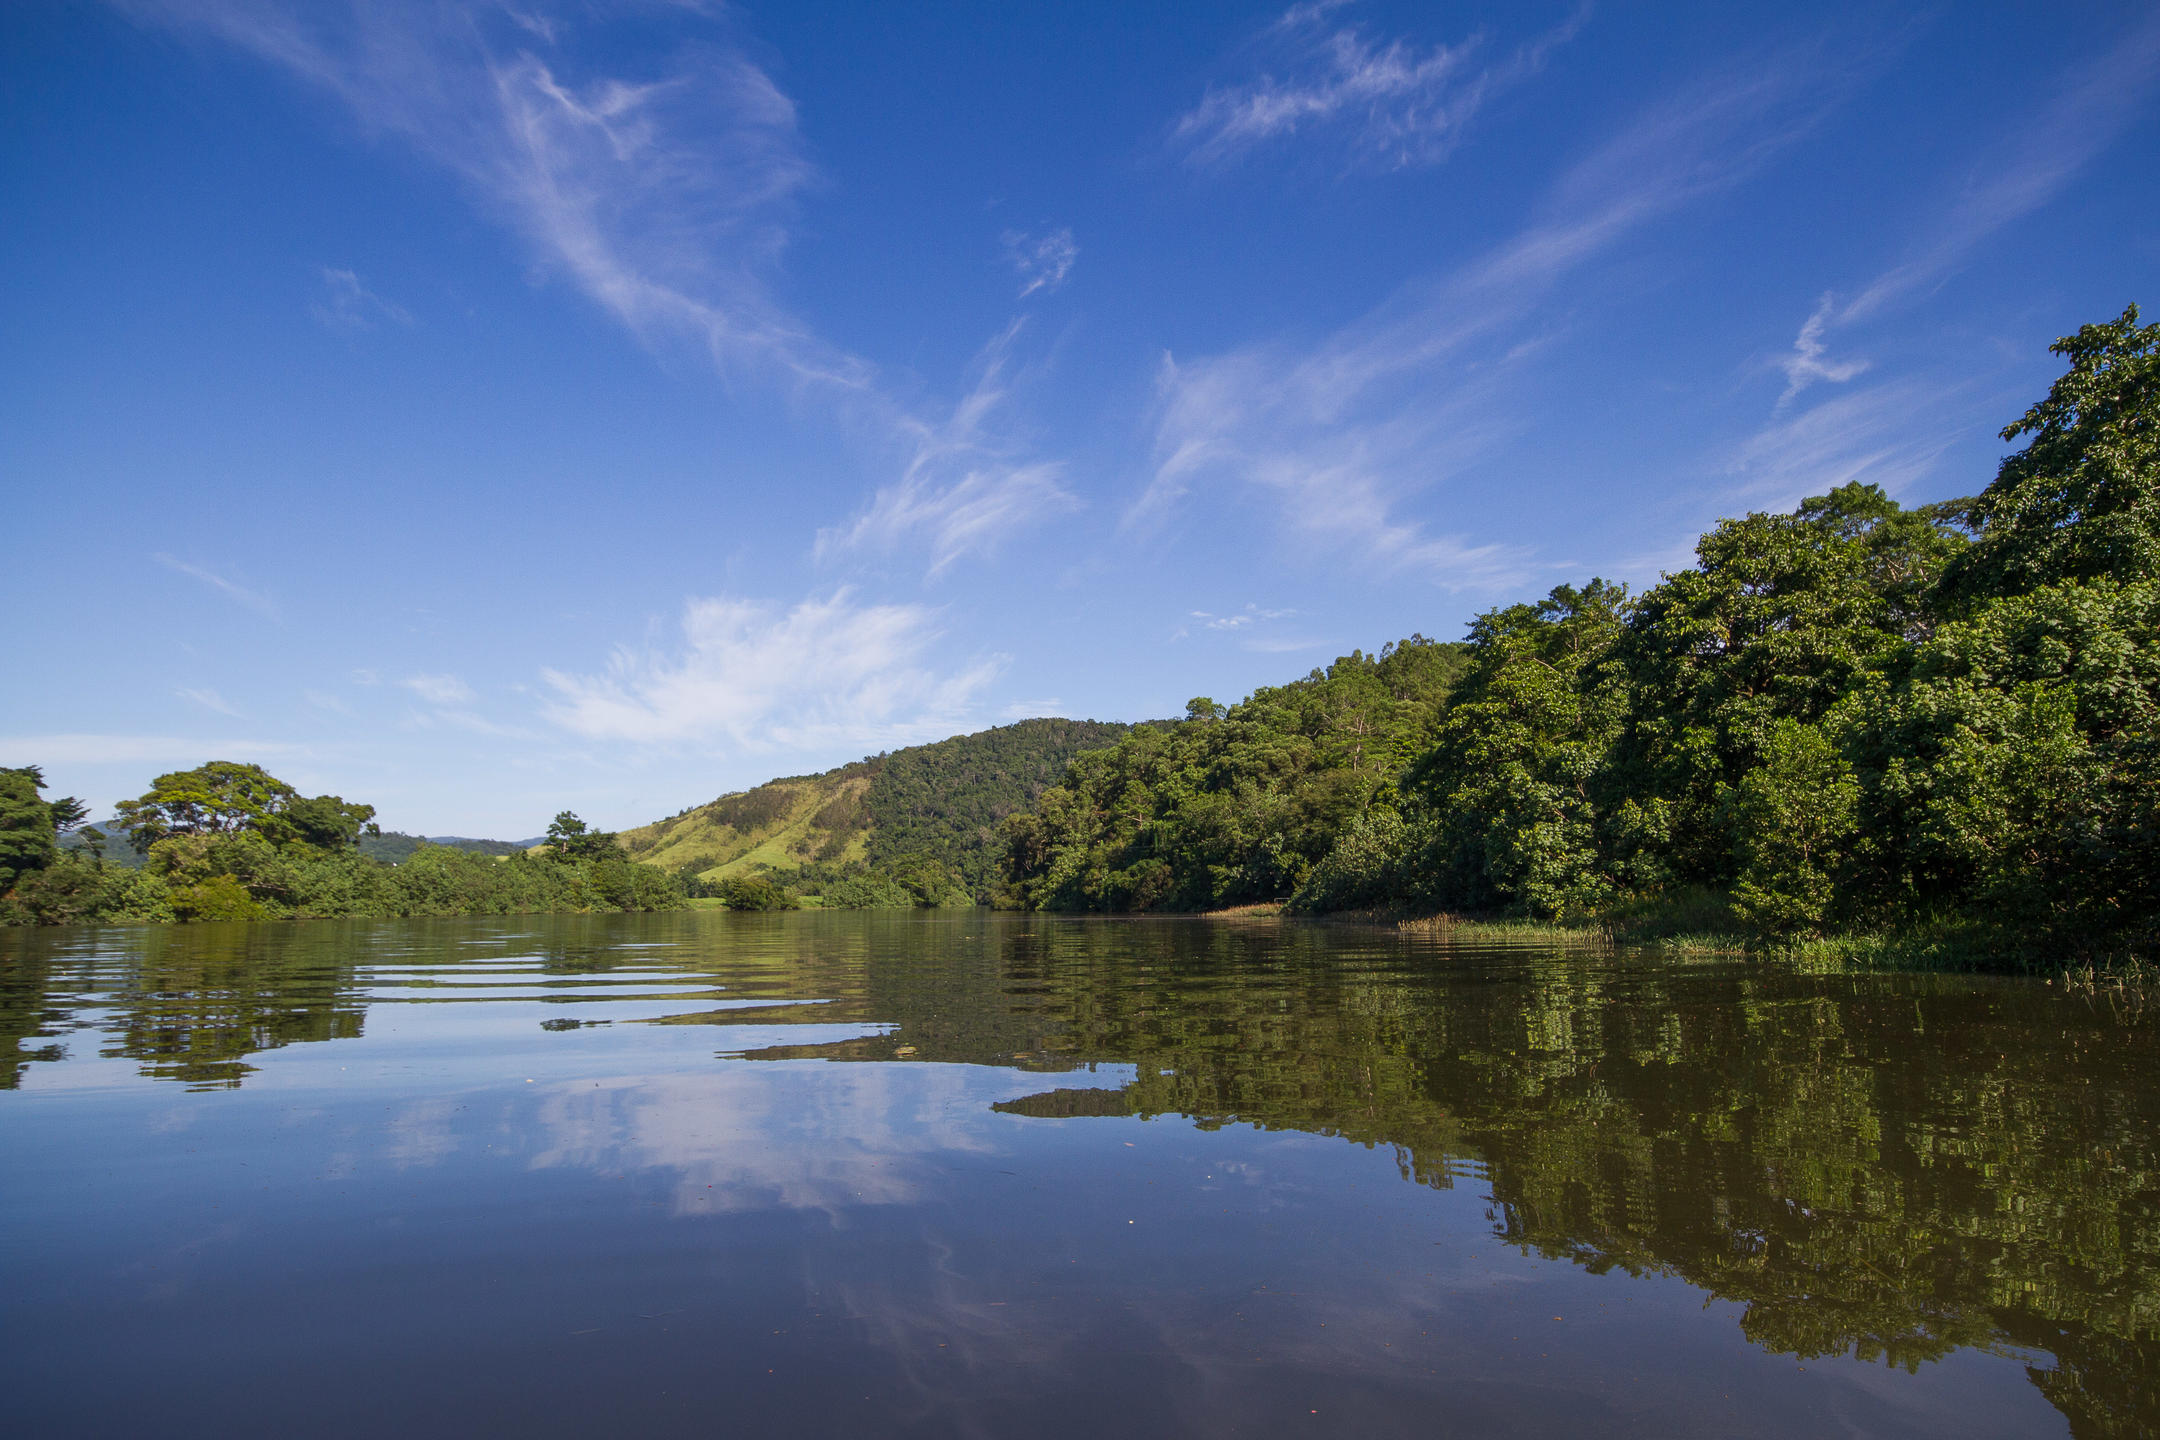 Blue sky and rolling green hills covered with trees are reflected in the calm waters of The Daintree River